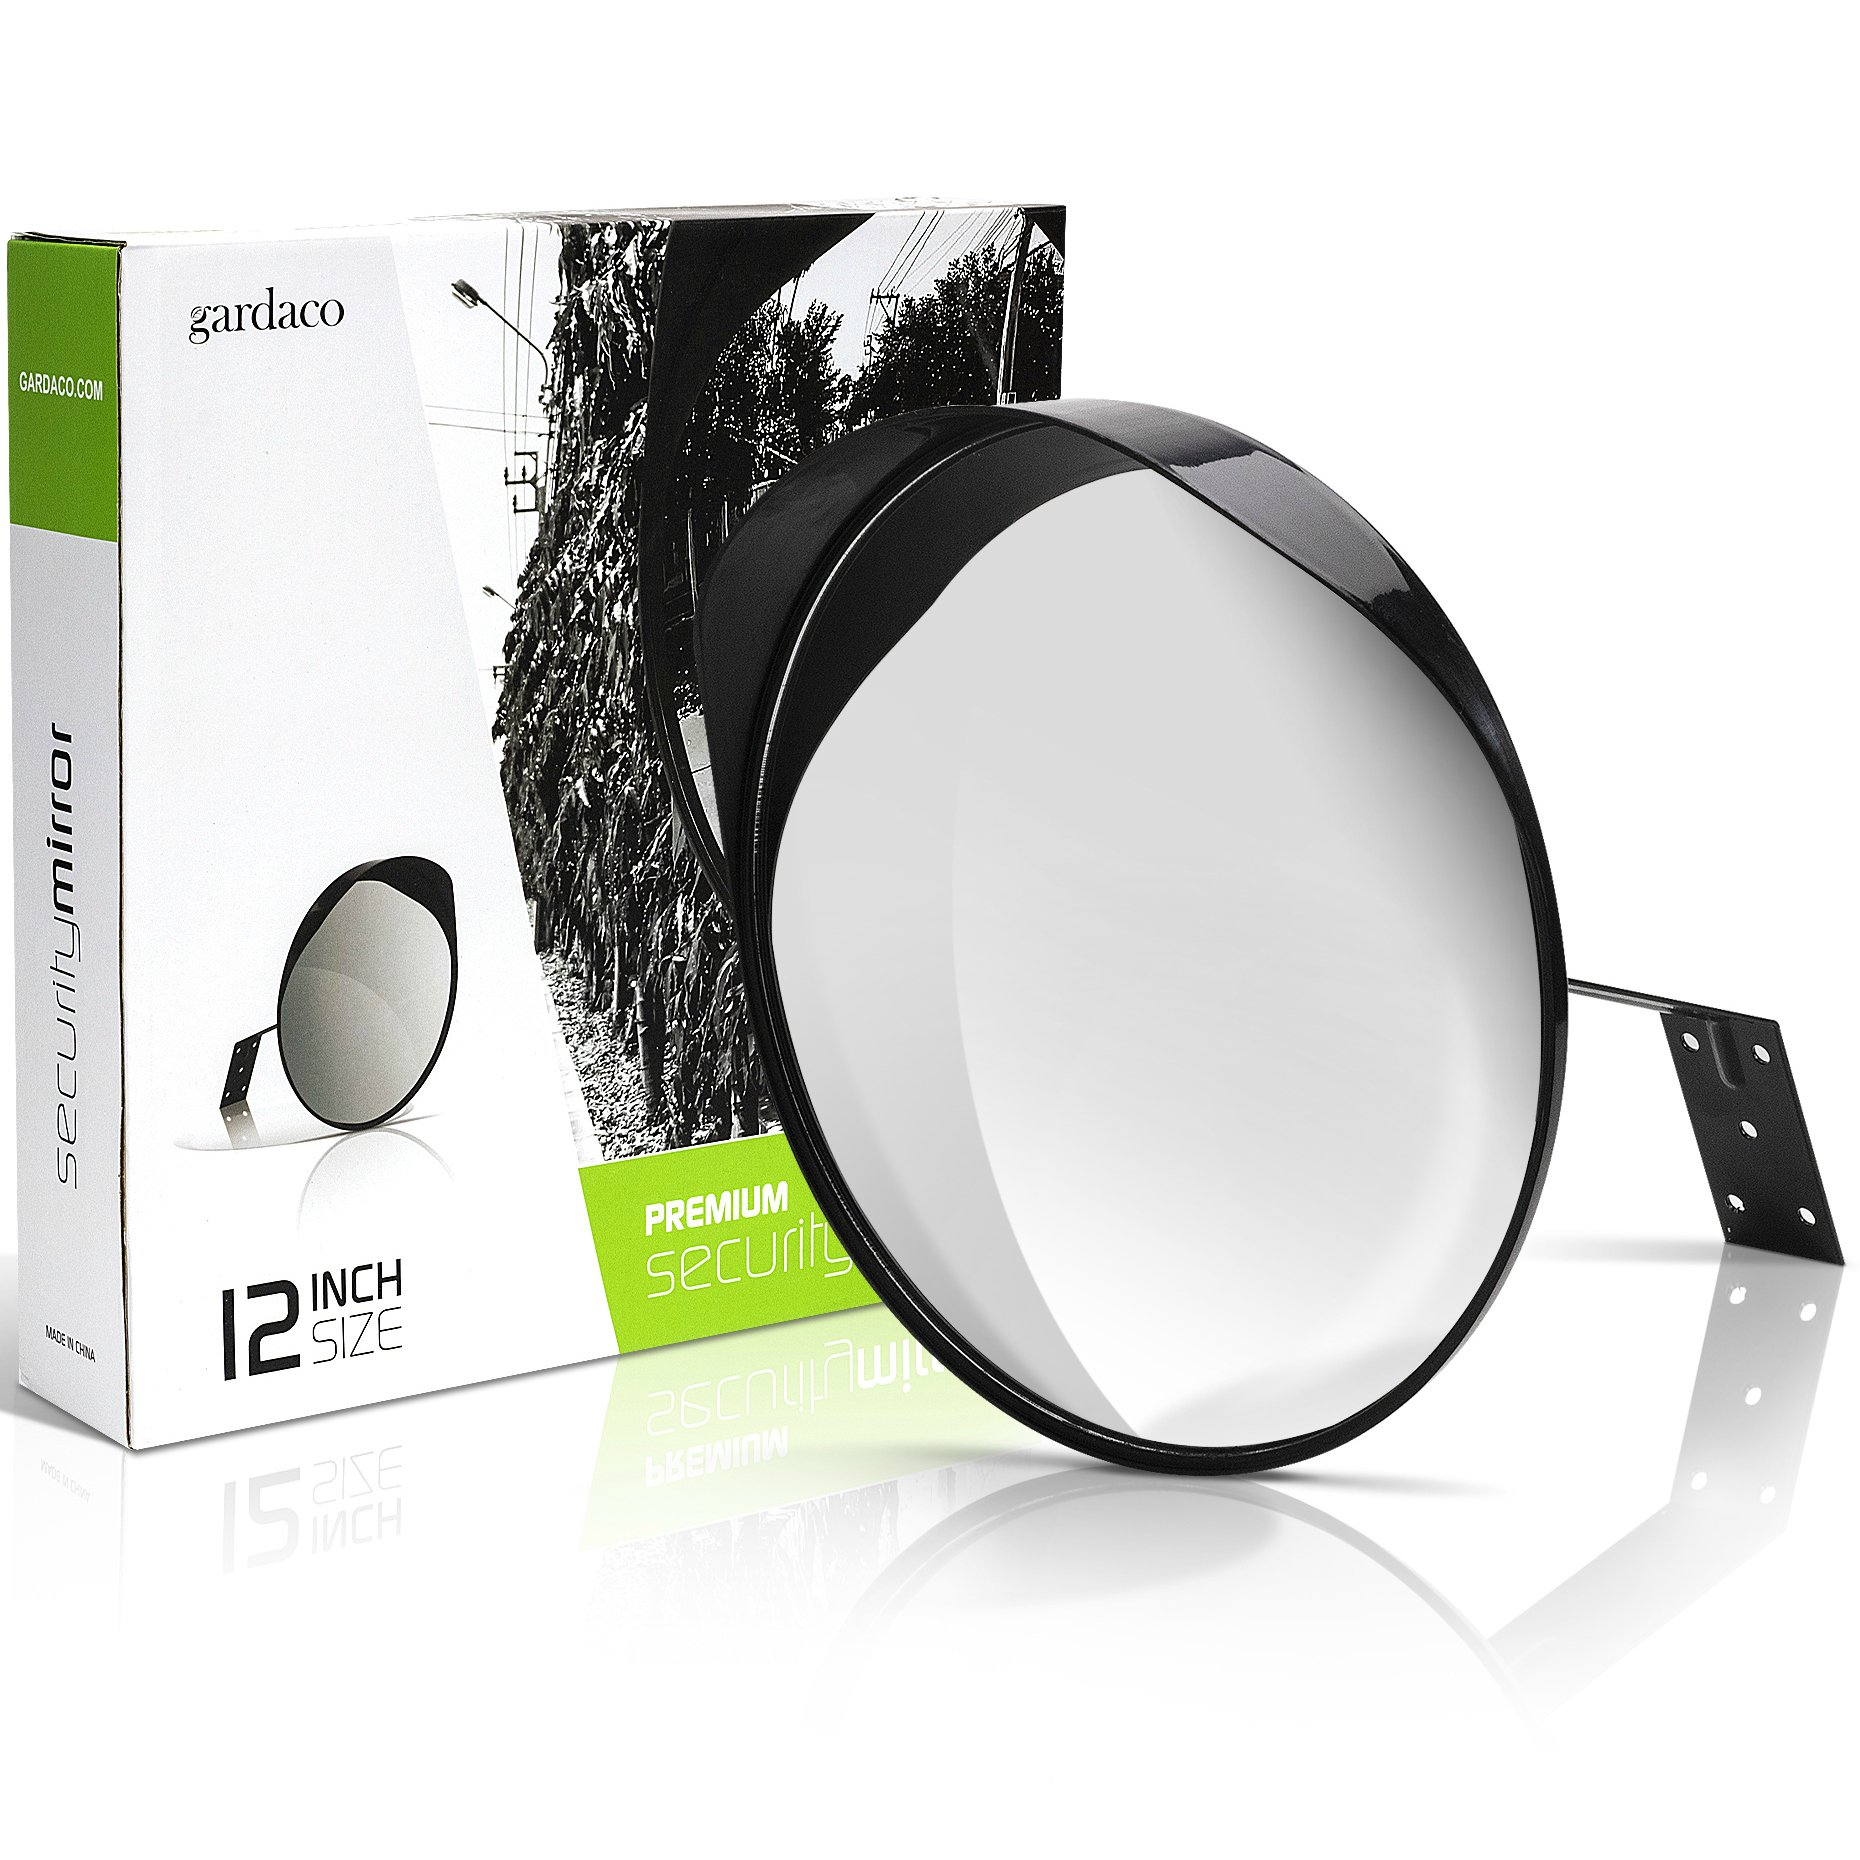 12'' Convex Safety and Security Mirror - Fully Adjustable Indoor Outdoor Curved Corner Mirror - Instantly See Your Blind Spots at Home, Driveway, Traffic, Offices and Stores